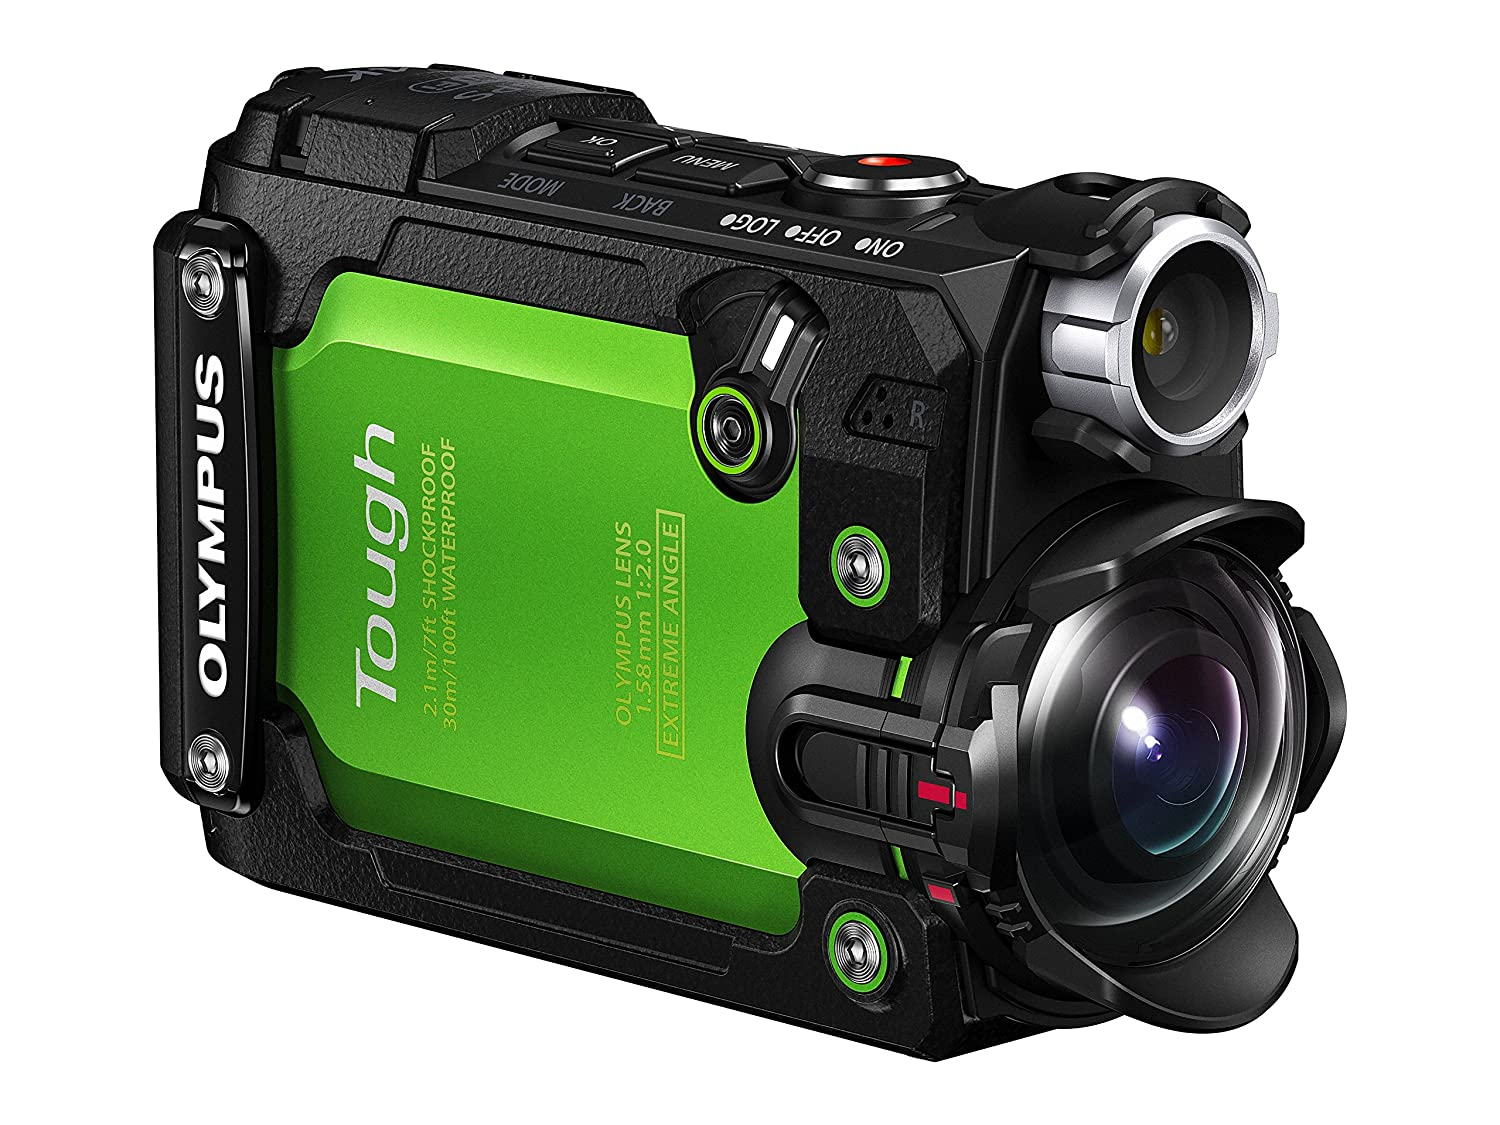 Top 10 Best Chinese Action Camera Reviews in 2021 7